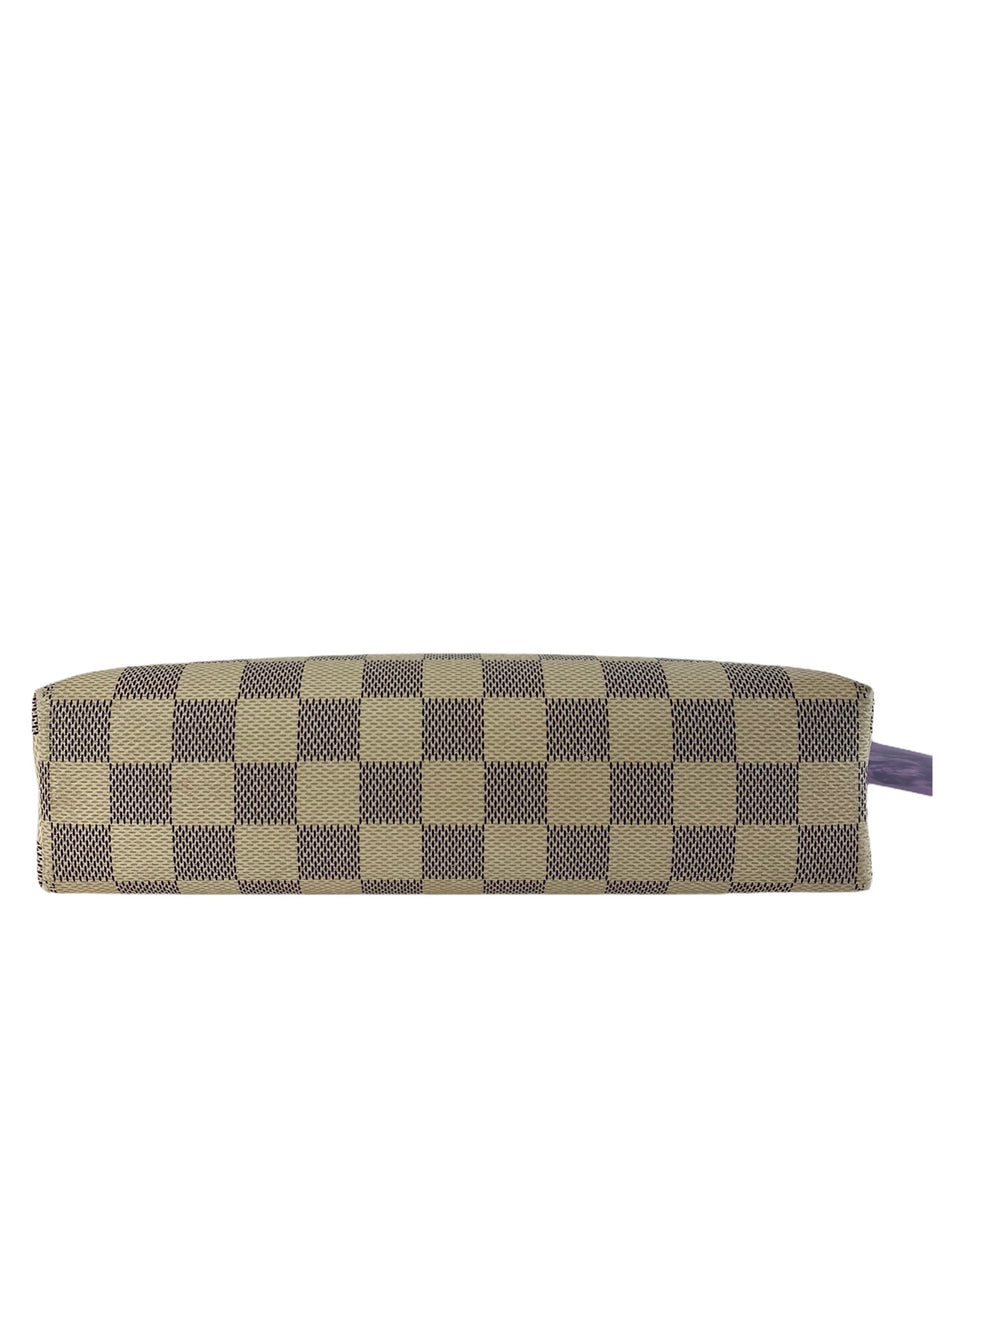 Louis Vuitton Azur Pouch - As Seen on Instagram